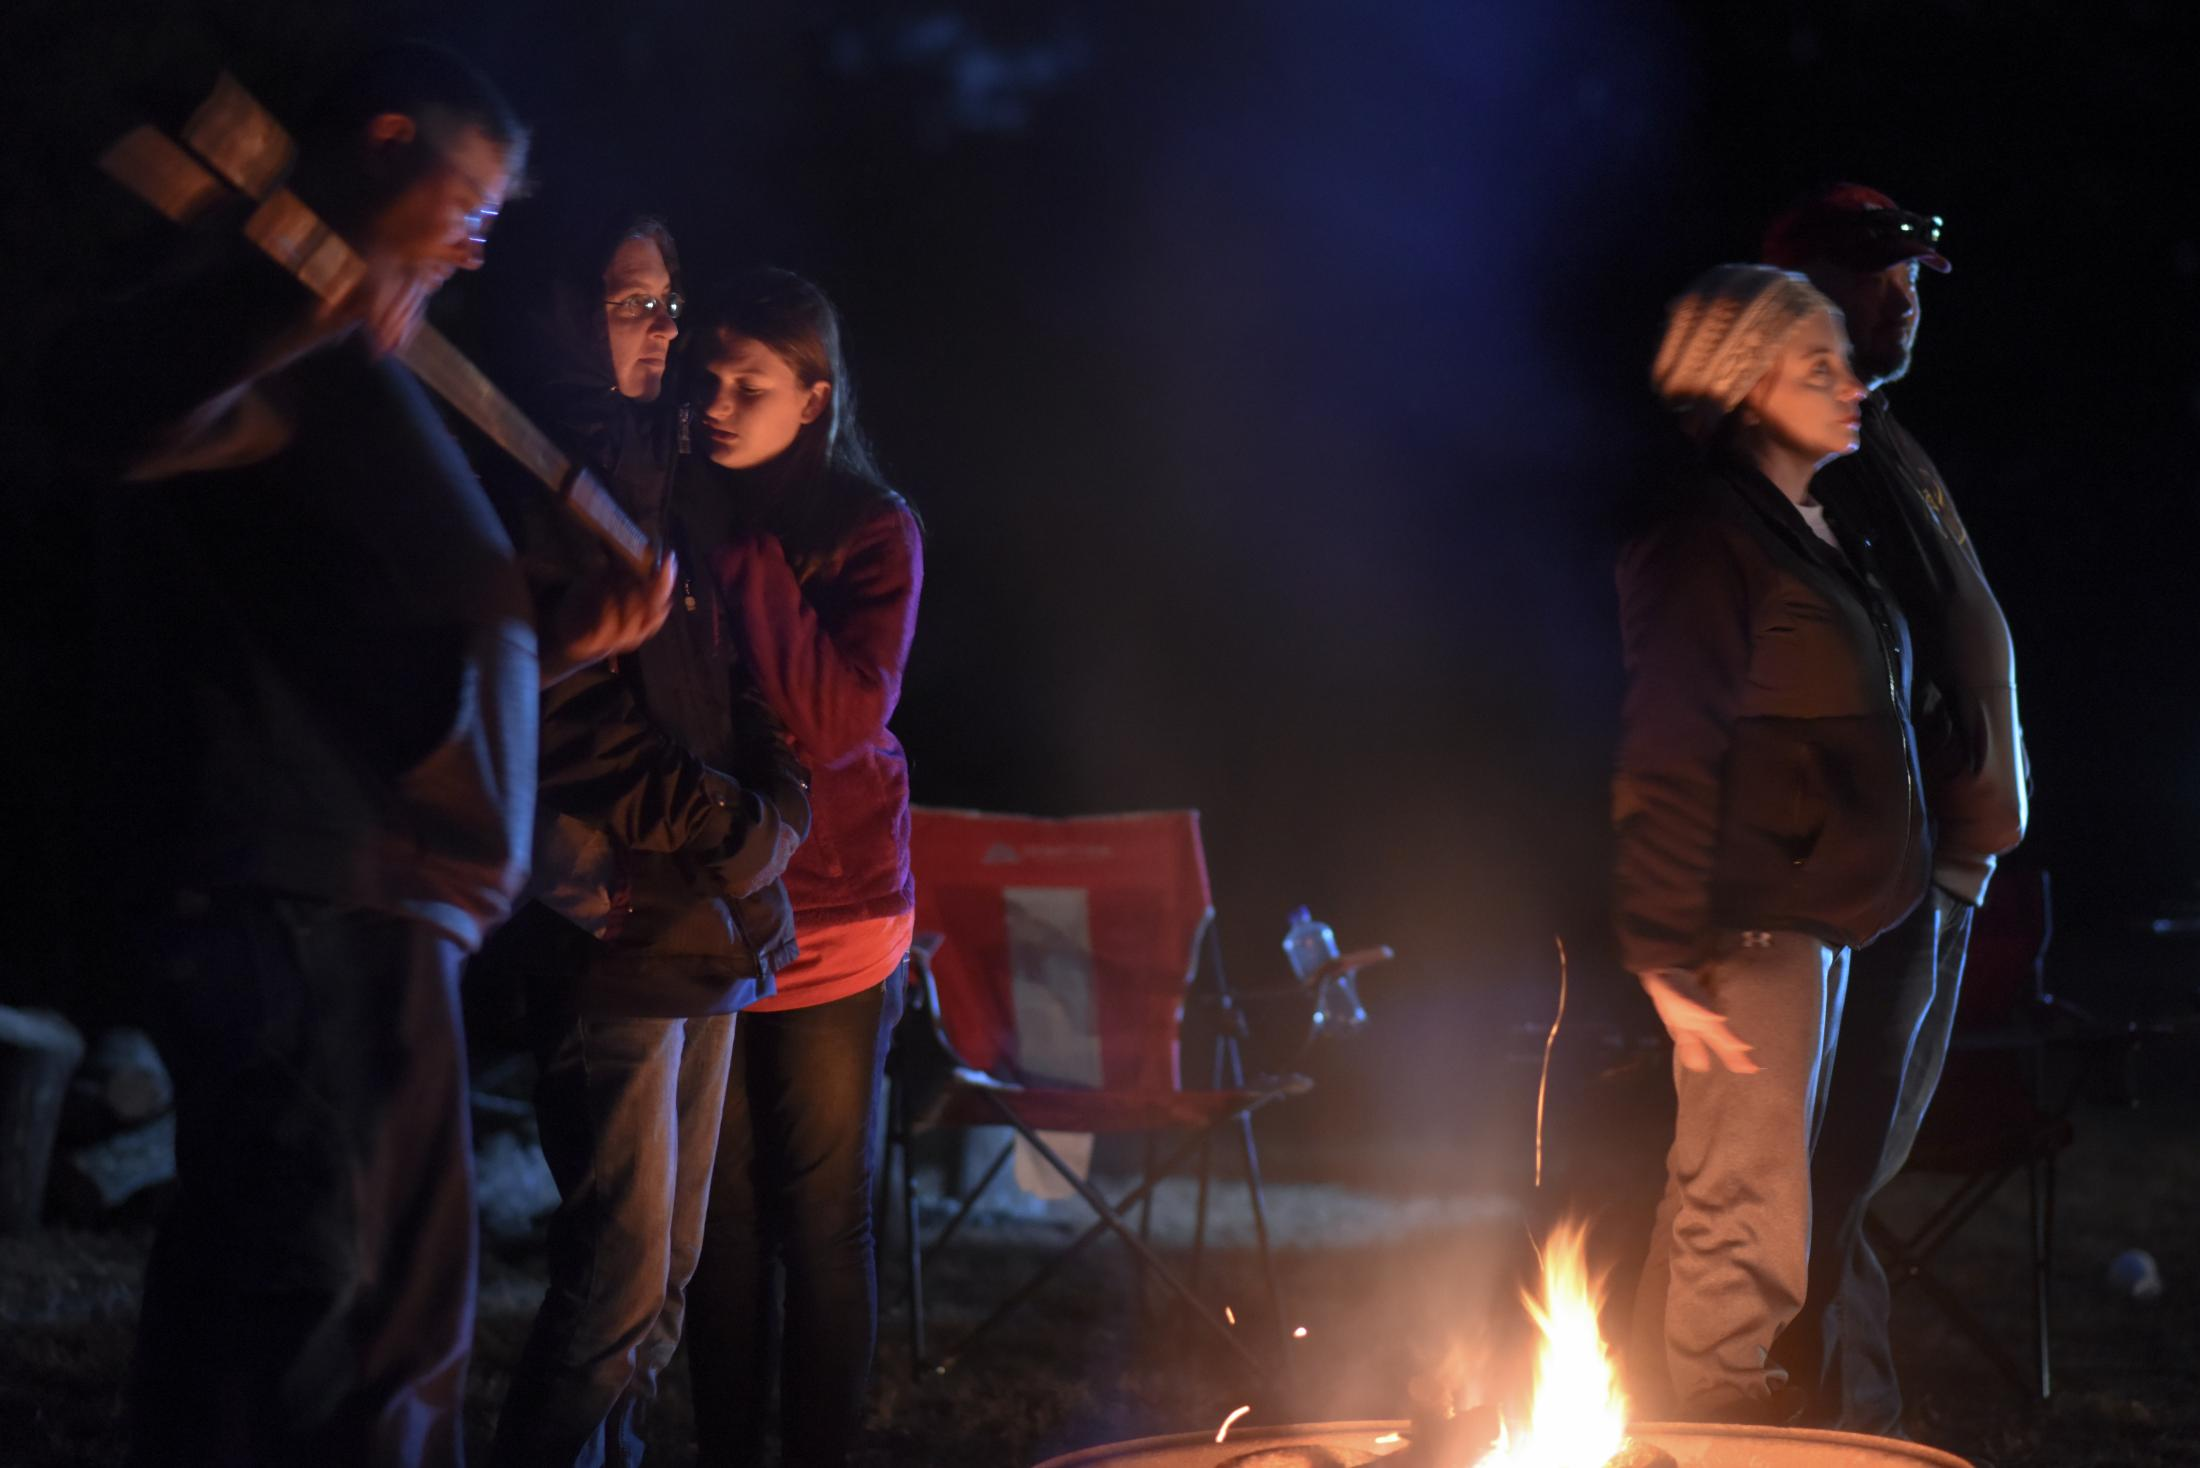 From left, Joey Kaup, Christy Popp, her daughter Shannon Popp who is on the Poplar Bluff trapshooting team and Angie Rideout stand around a campfire at the Poplar Bluff Gun Club in Poplar Bluff, Missouri on November 9, 2019. As of 2016, Missouri was the top Midwest state, and seventh in the nation, in the amount of NRA Foundation money given to schools and 4-H groups this decade.